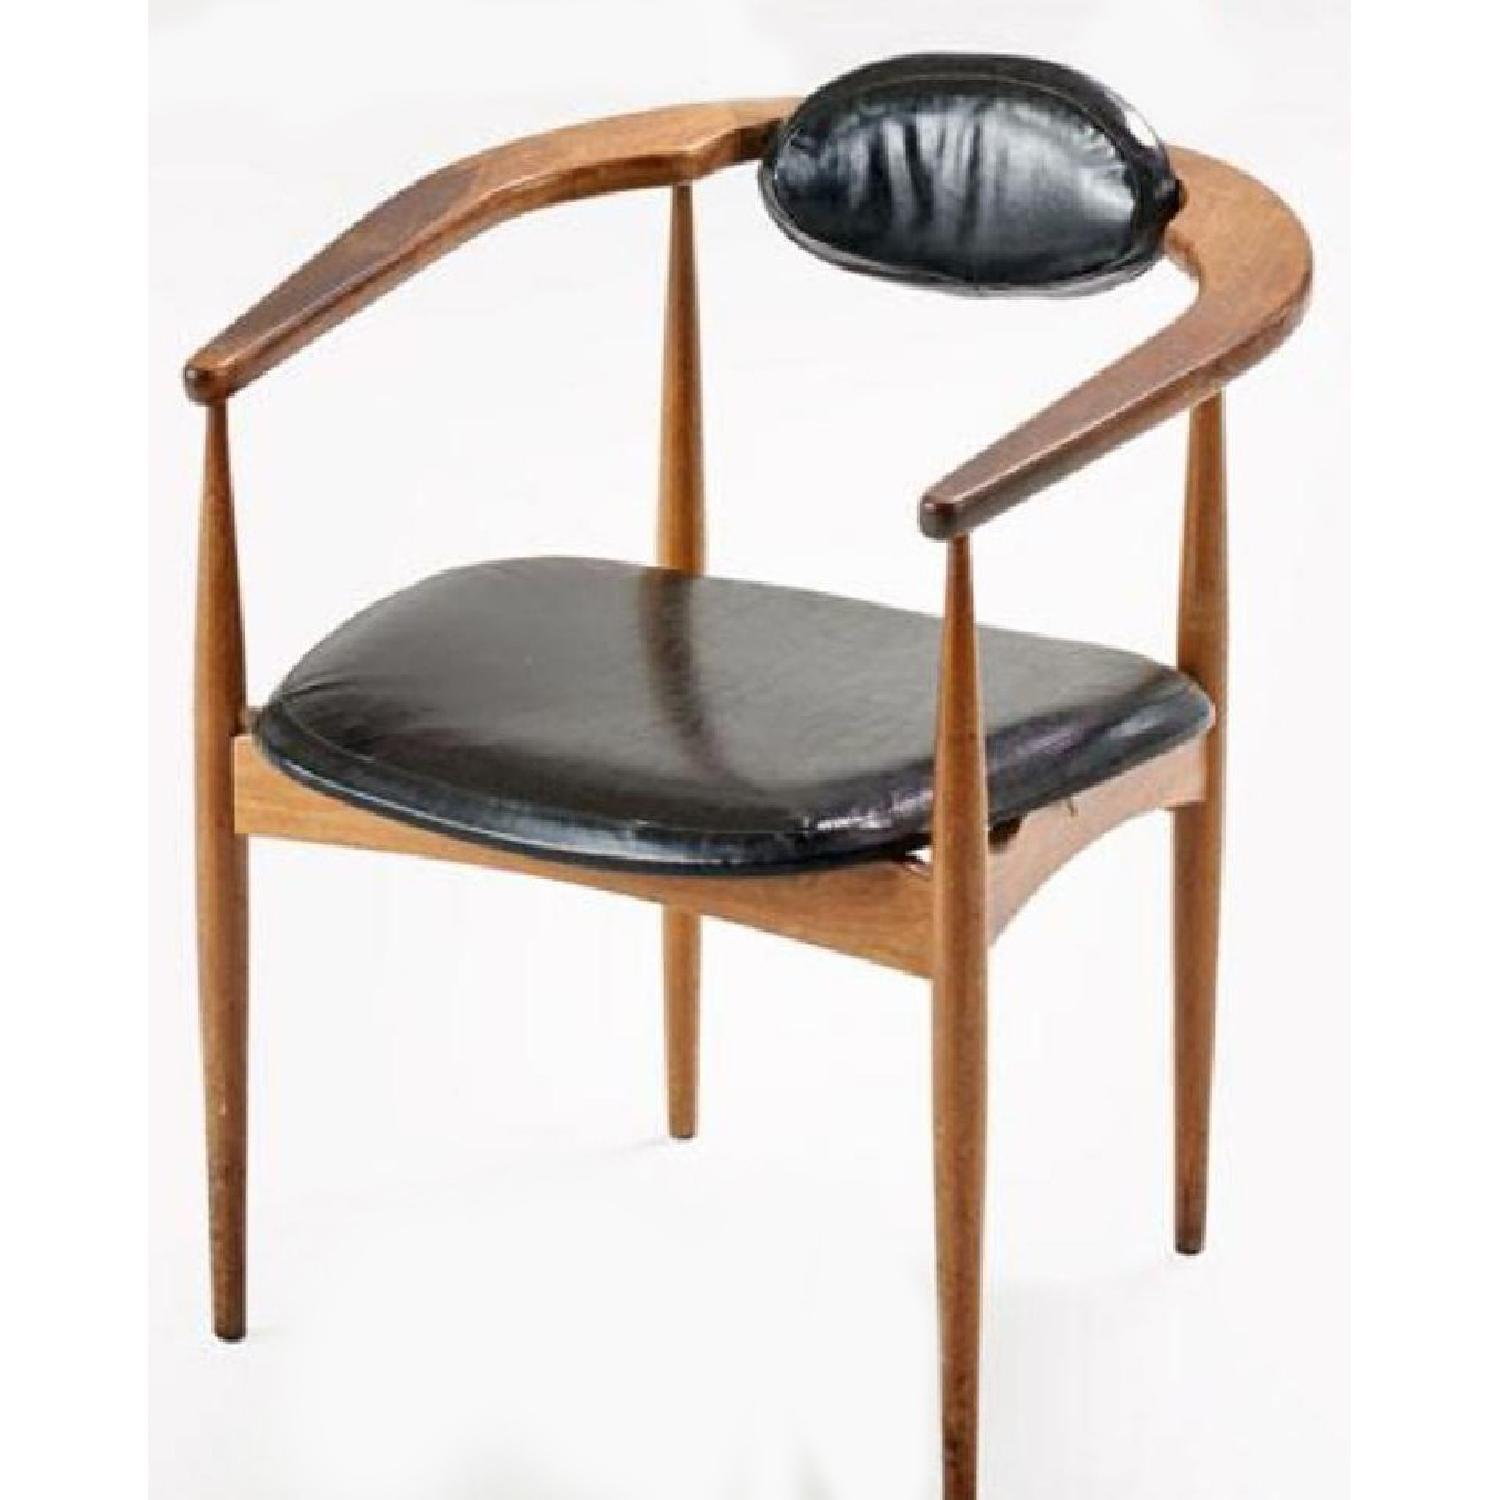 Vintage Adrian Pearsall Chairs - image-0